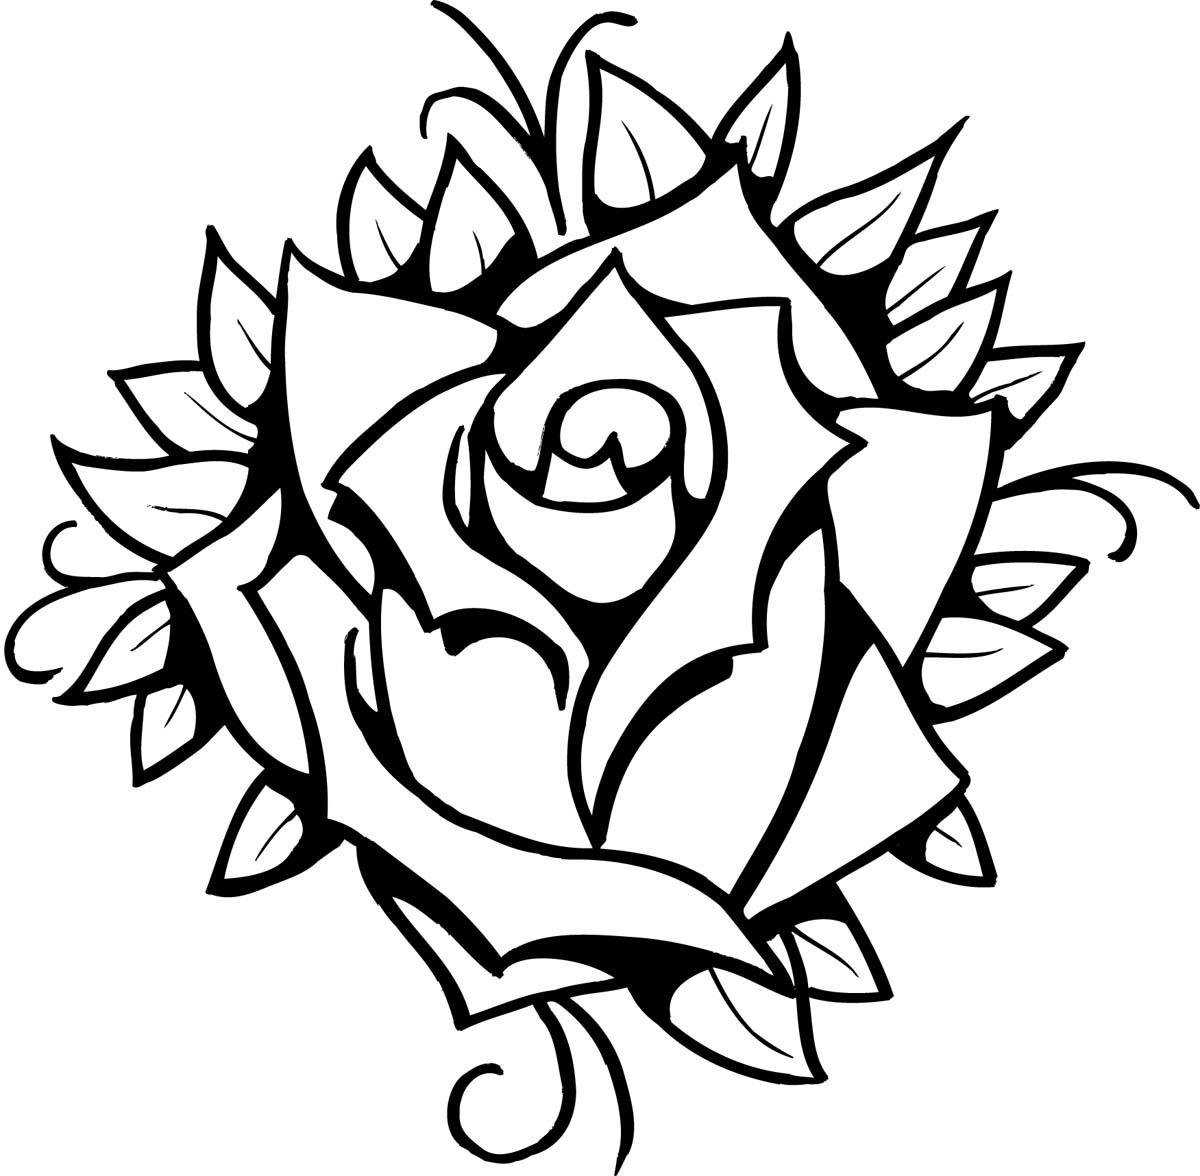 Line Drawing Of A Rose : Rose line drawing clipart best